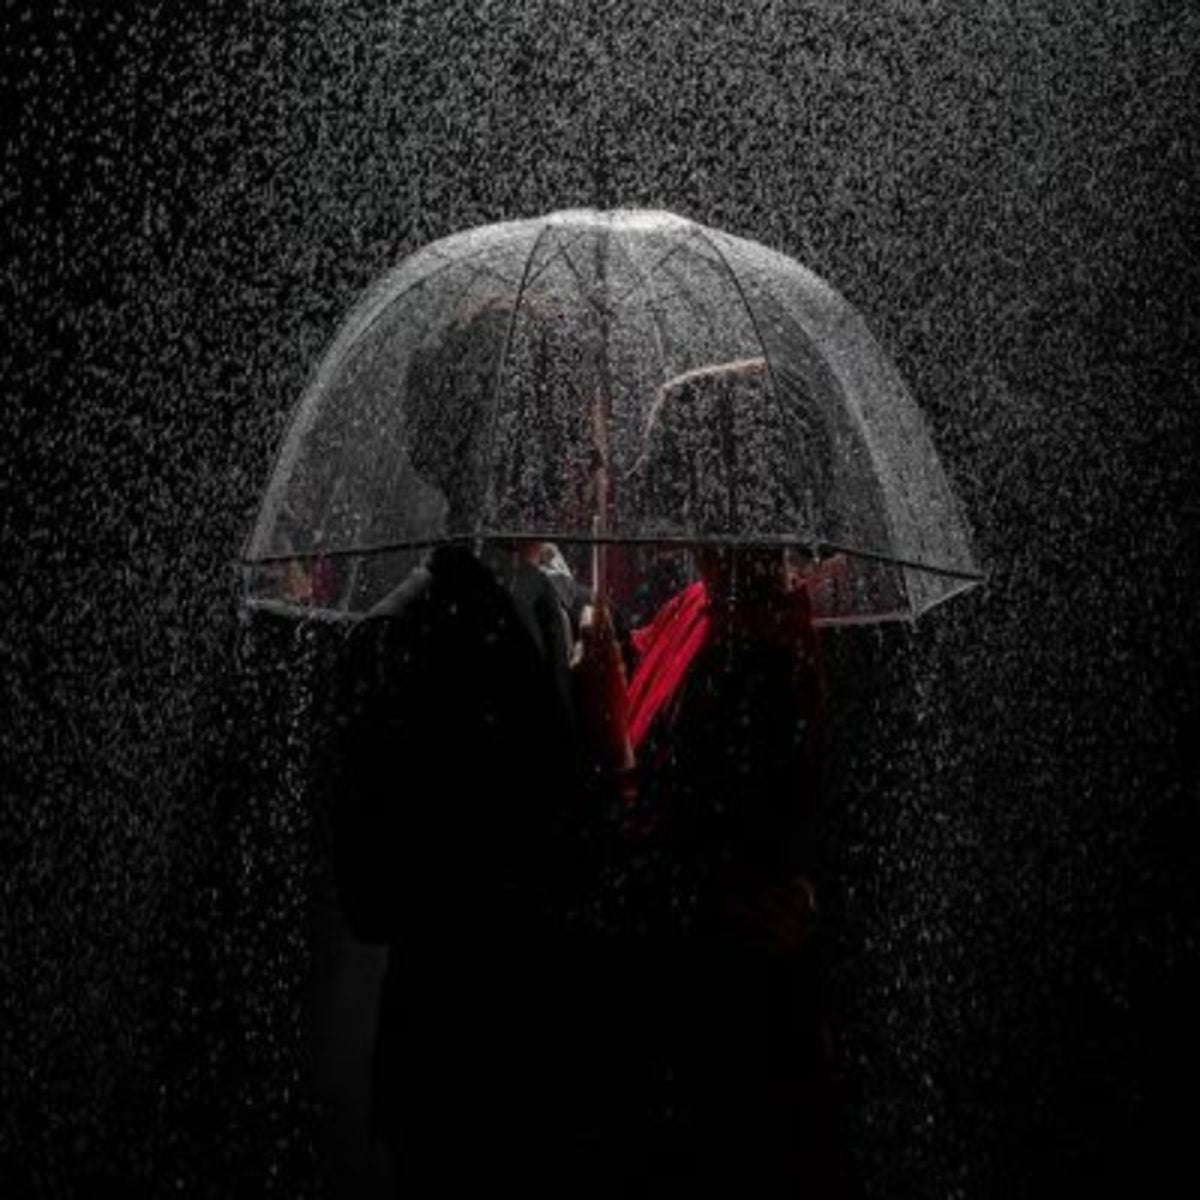 Tyler Shields, 'Under The Rain', 2018 - Provocateur Gallery